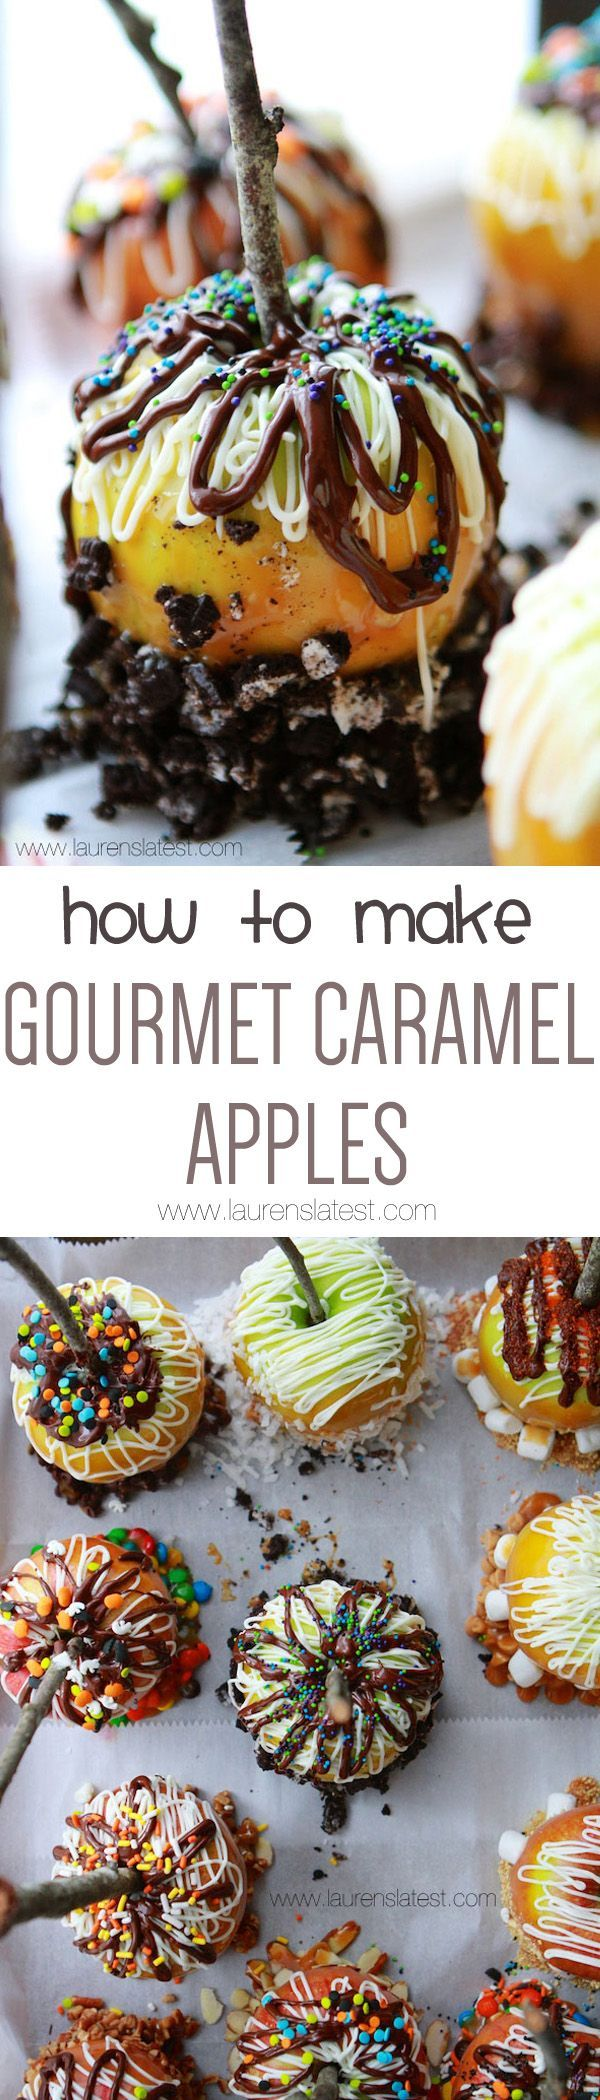 How to Make Gourmet Caramel Apples